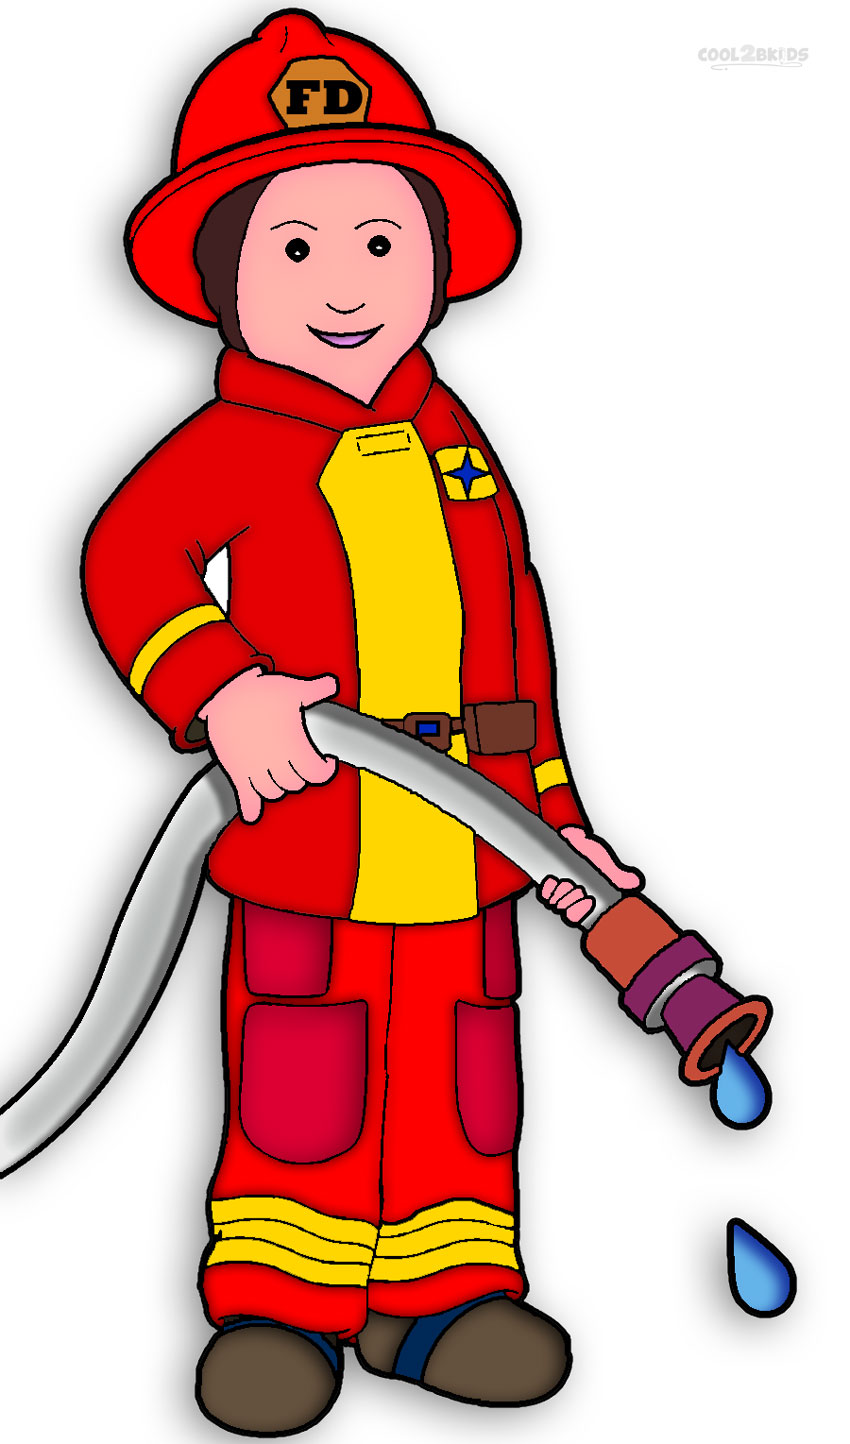 Free Fireman Helmet Clip Art Pictures to pin on Pinterest